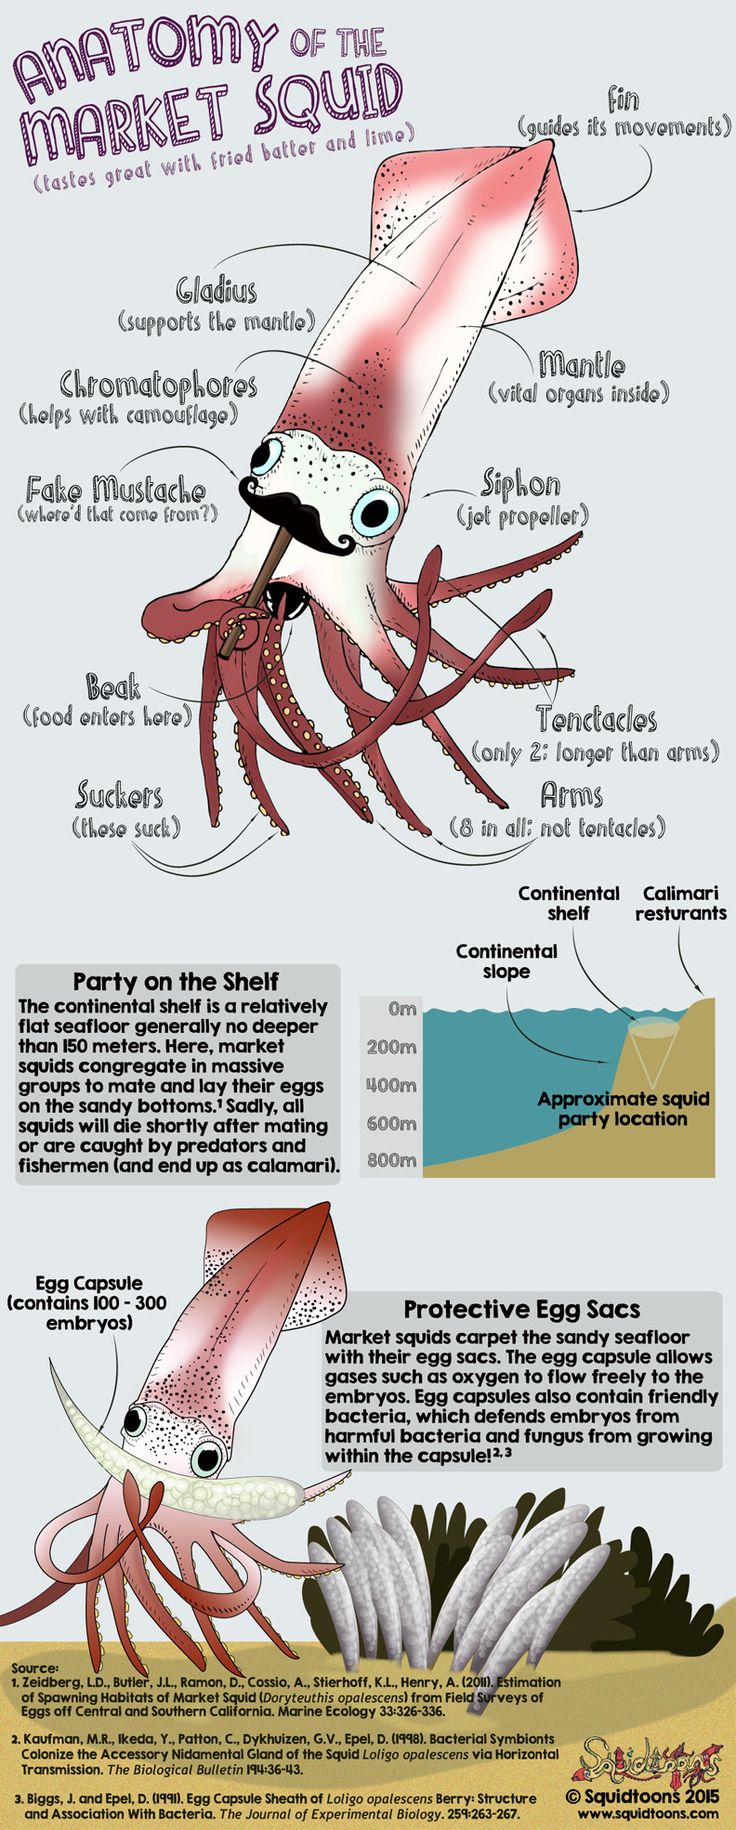 Octopus internal anatomy